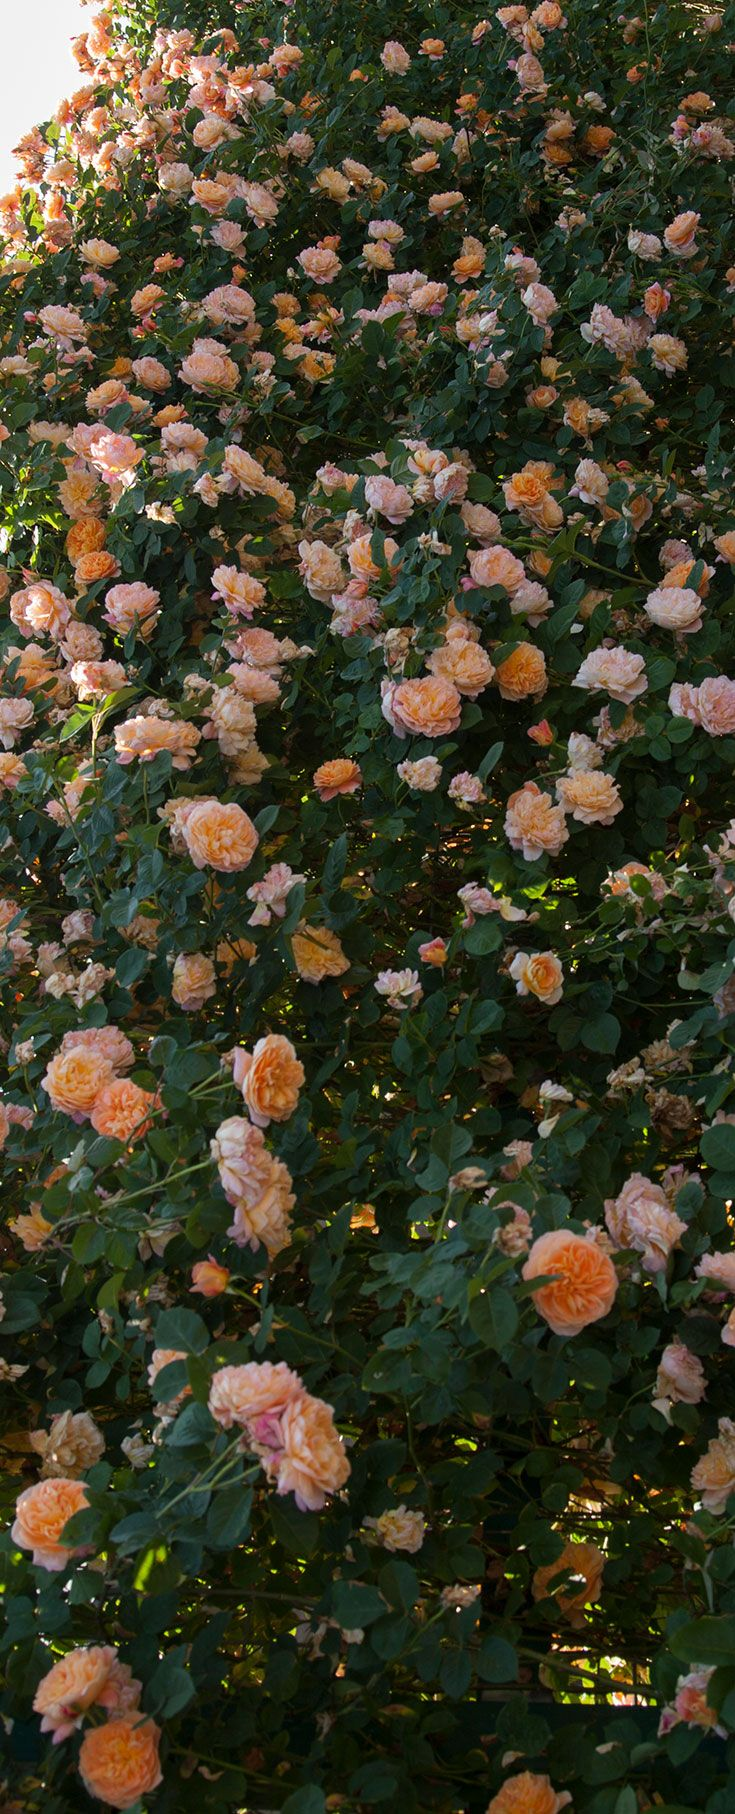 Grow beautiful Heirloom Roses and create spectacular walls of color!!!